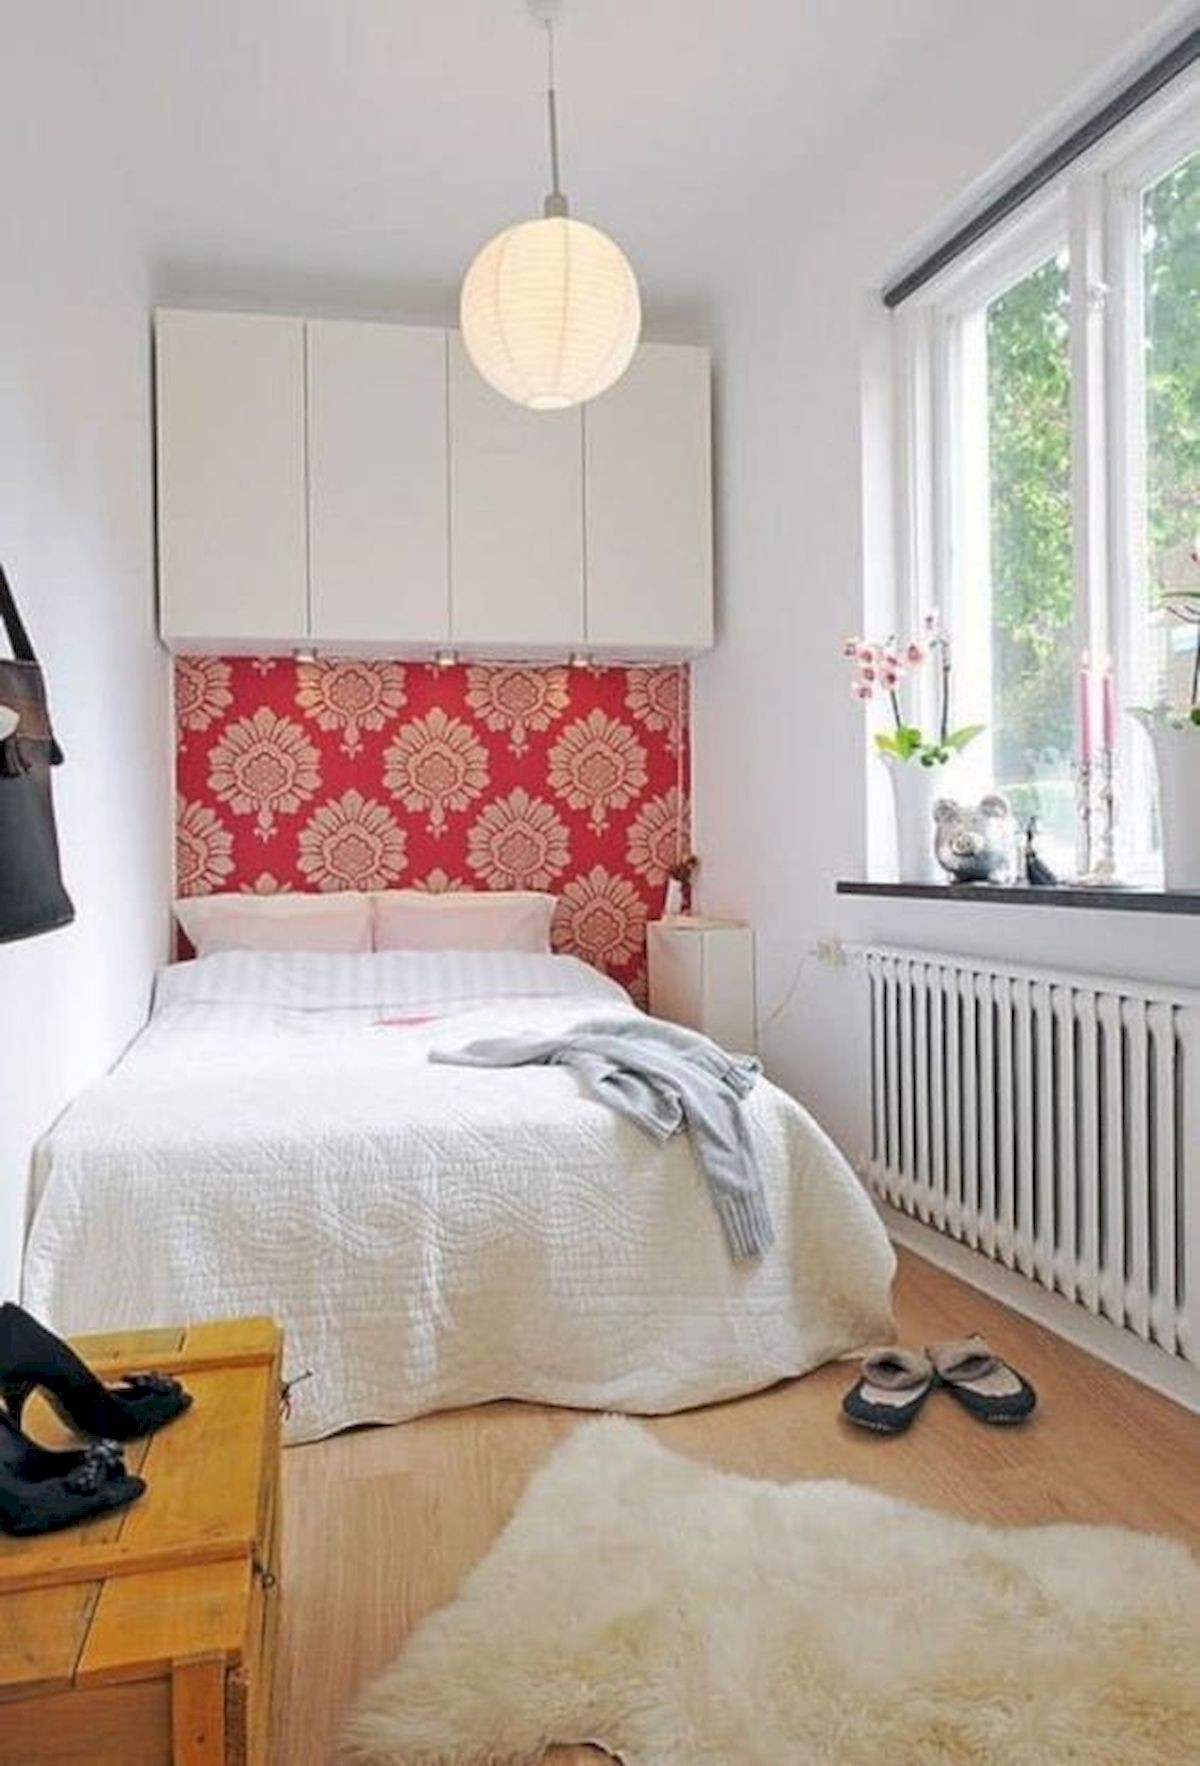 60 Easy and Brilliant DIY Storage Ideas For Small Bedroom (28)